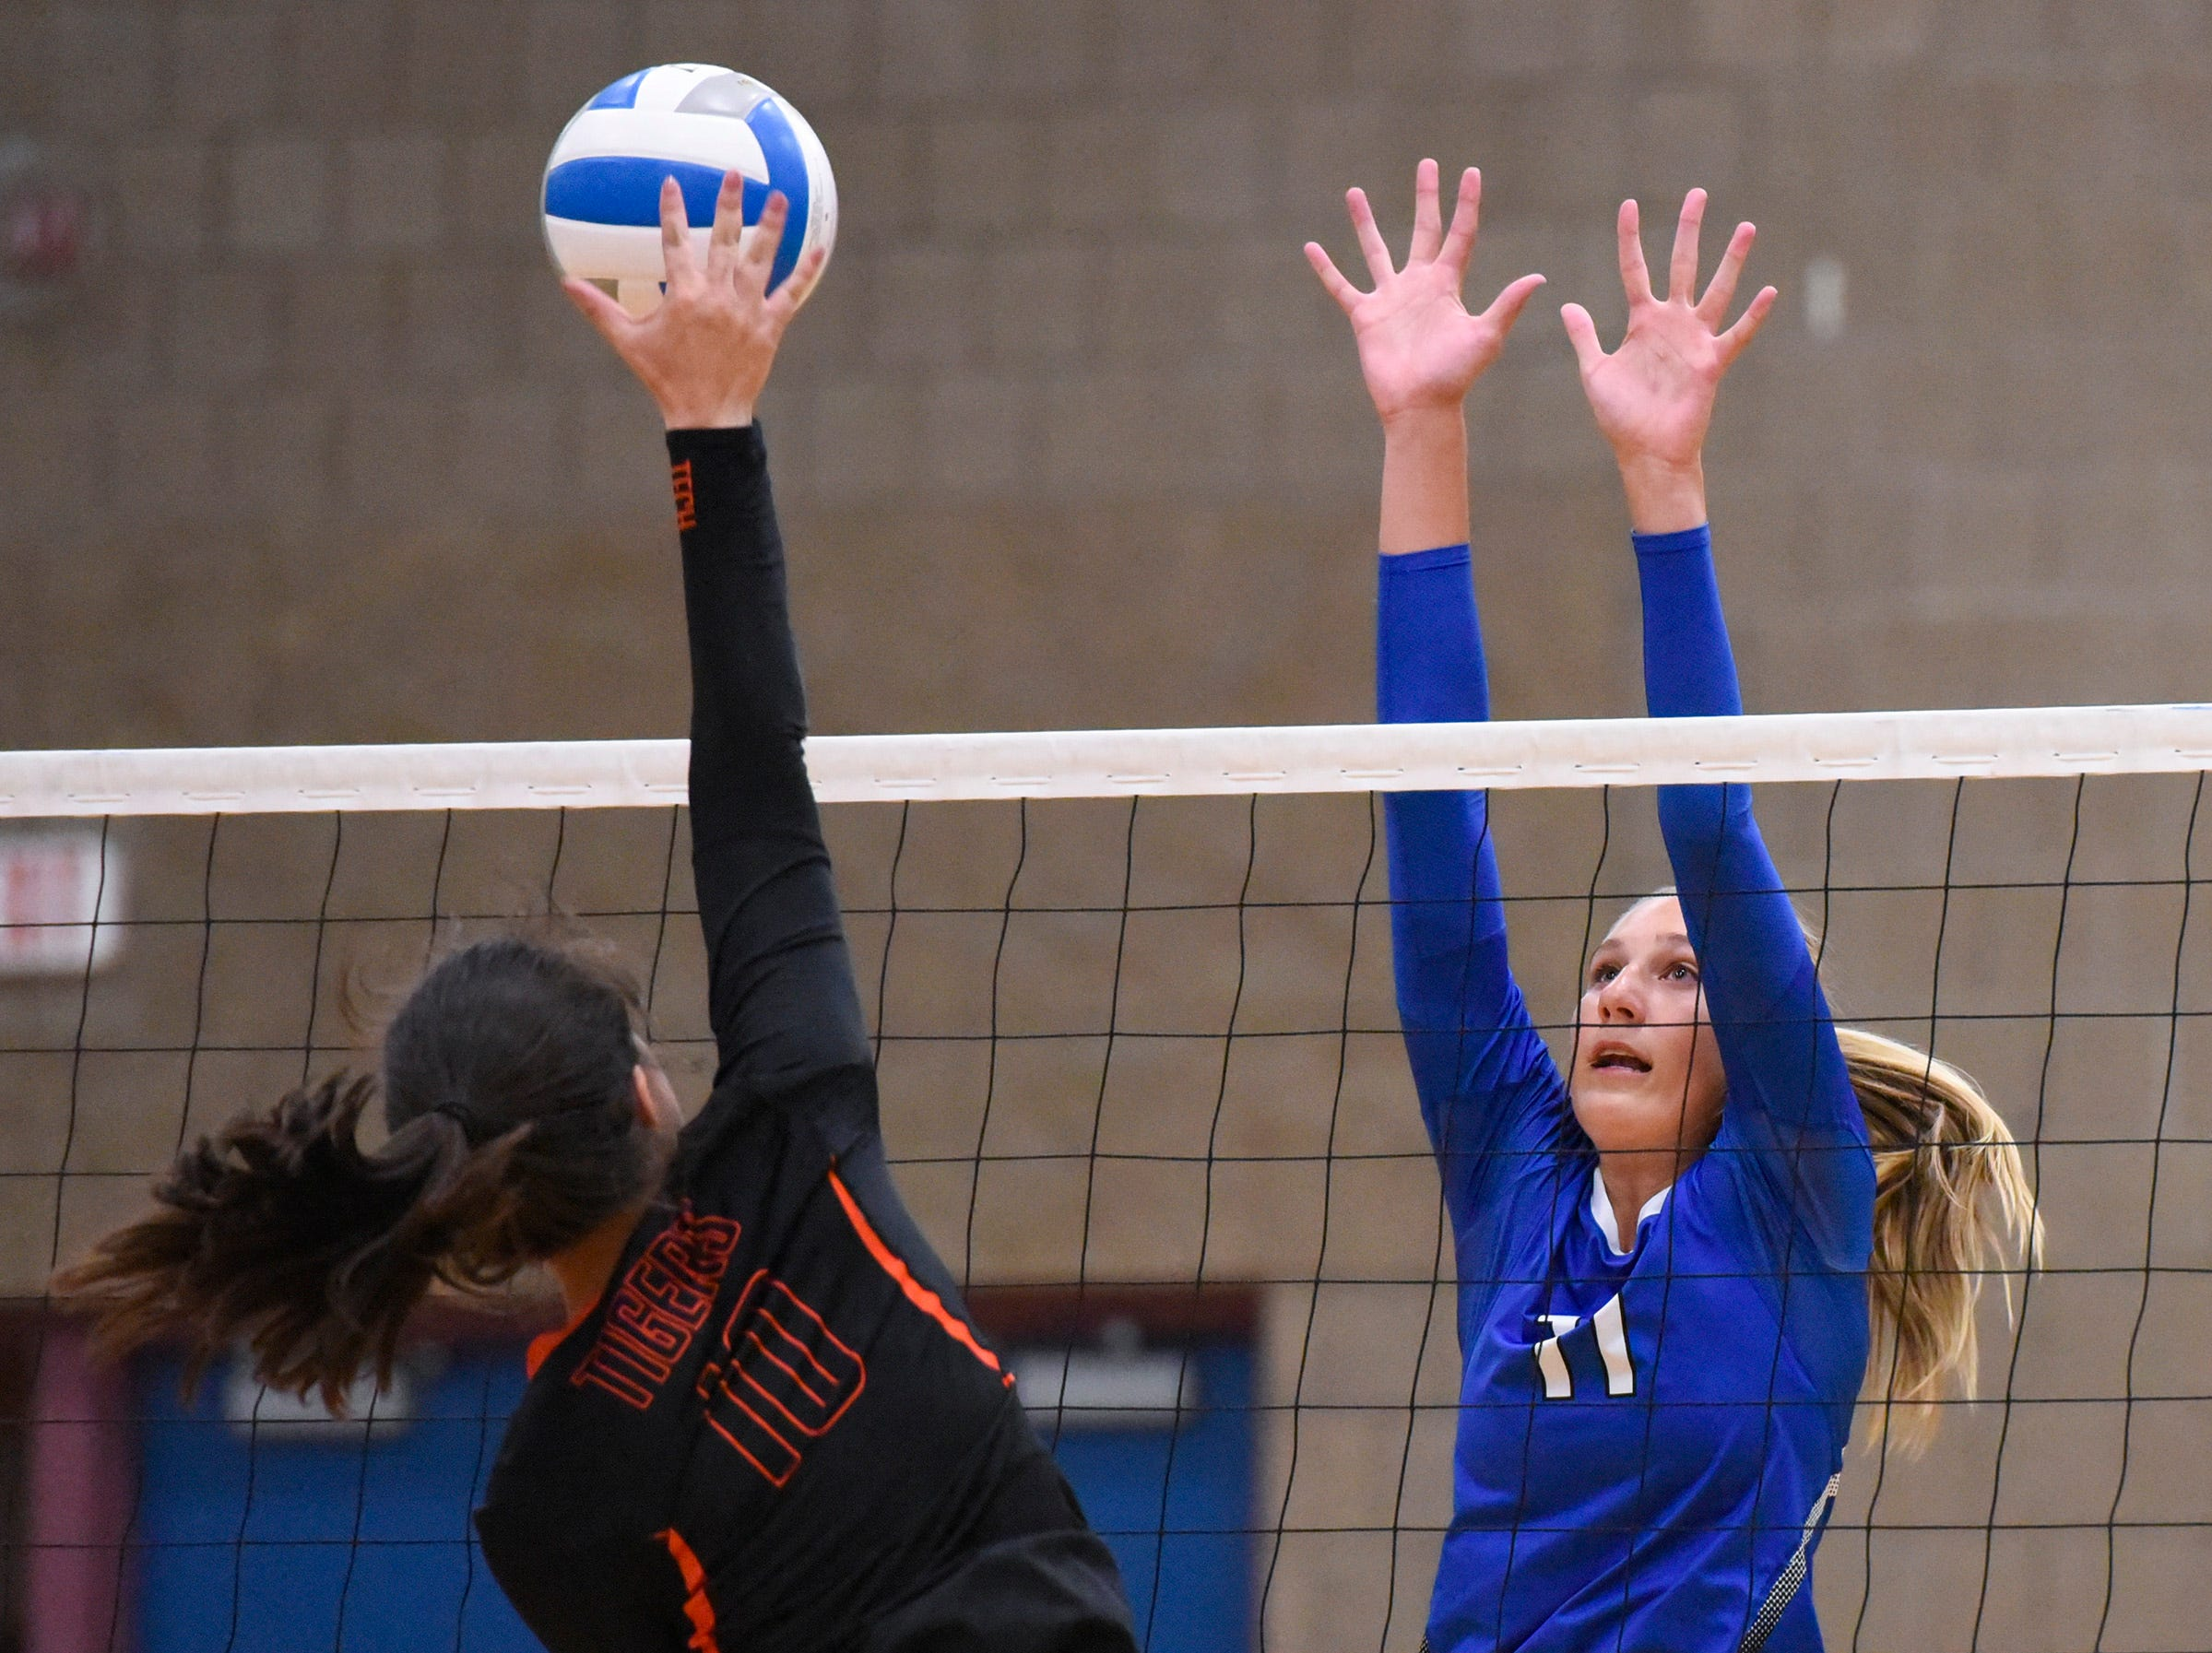 Tech's Ana Rivera tries to spike the ball past Sartell's Katelyn Hammer during the first game Tuesday, Sept. 11, in Sartell